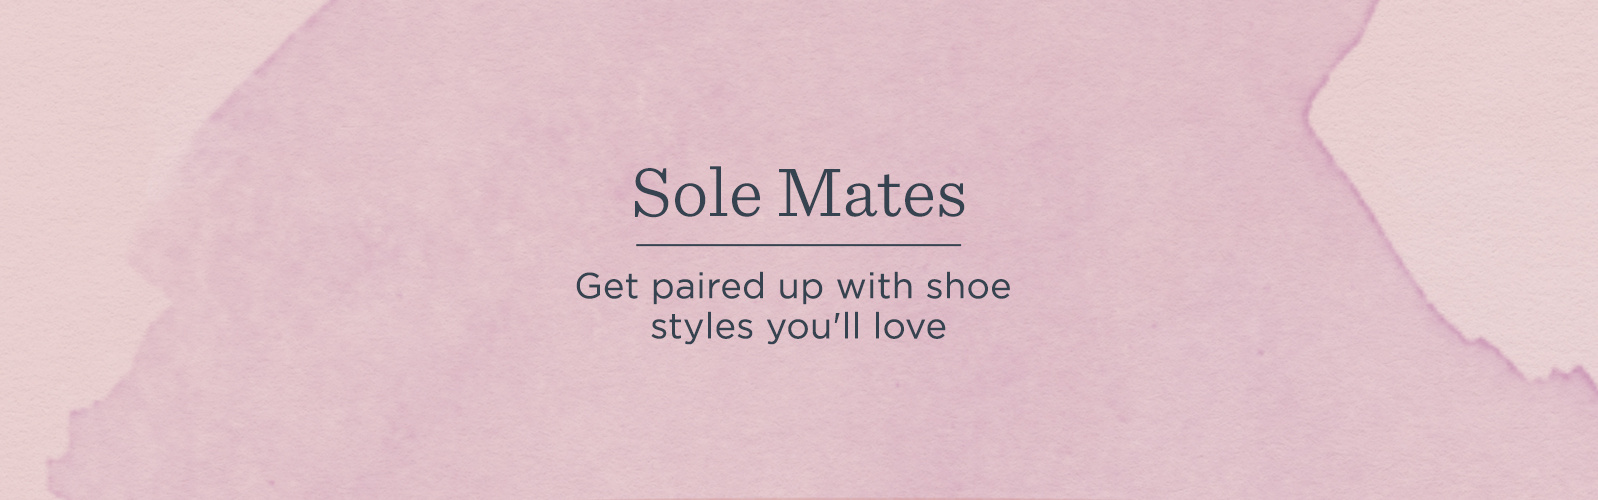 Sole Mates.  Get paired up with shoe styles you'll love